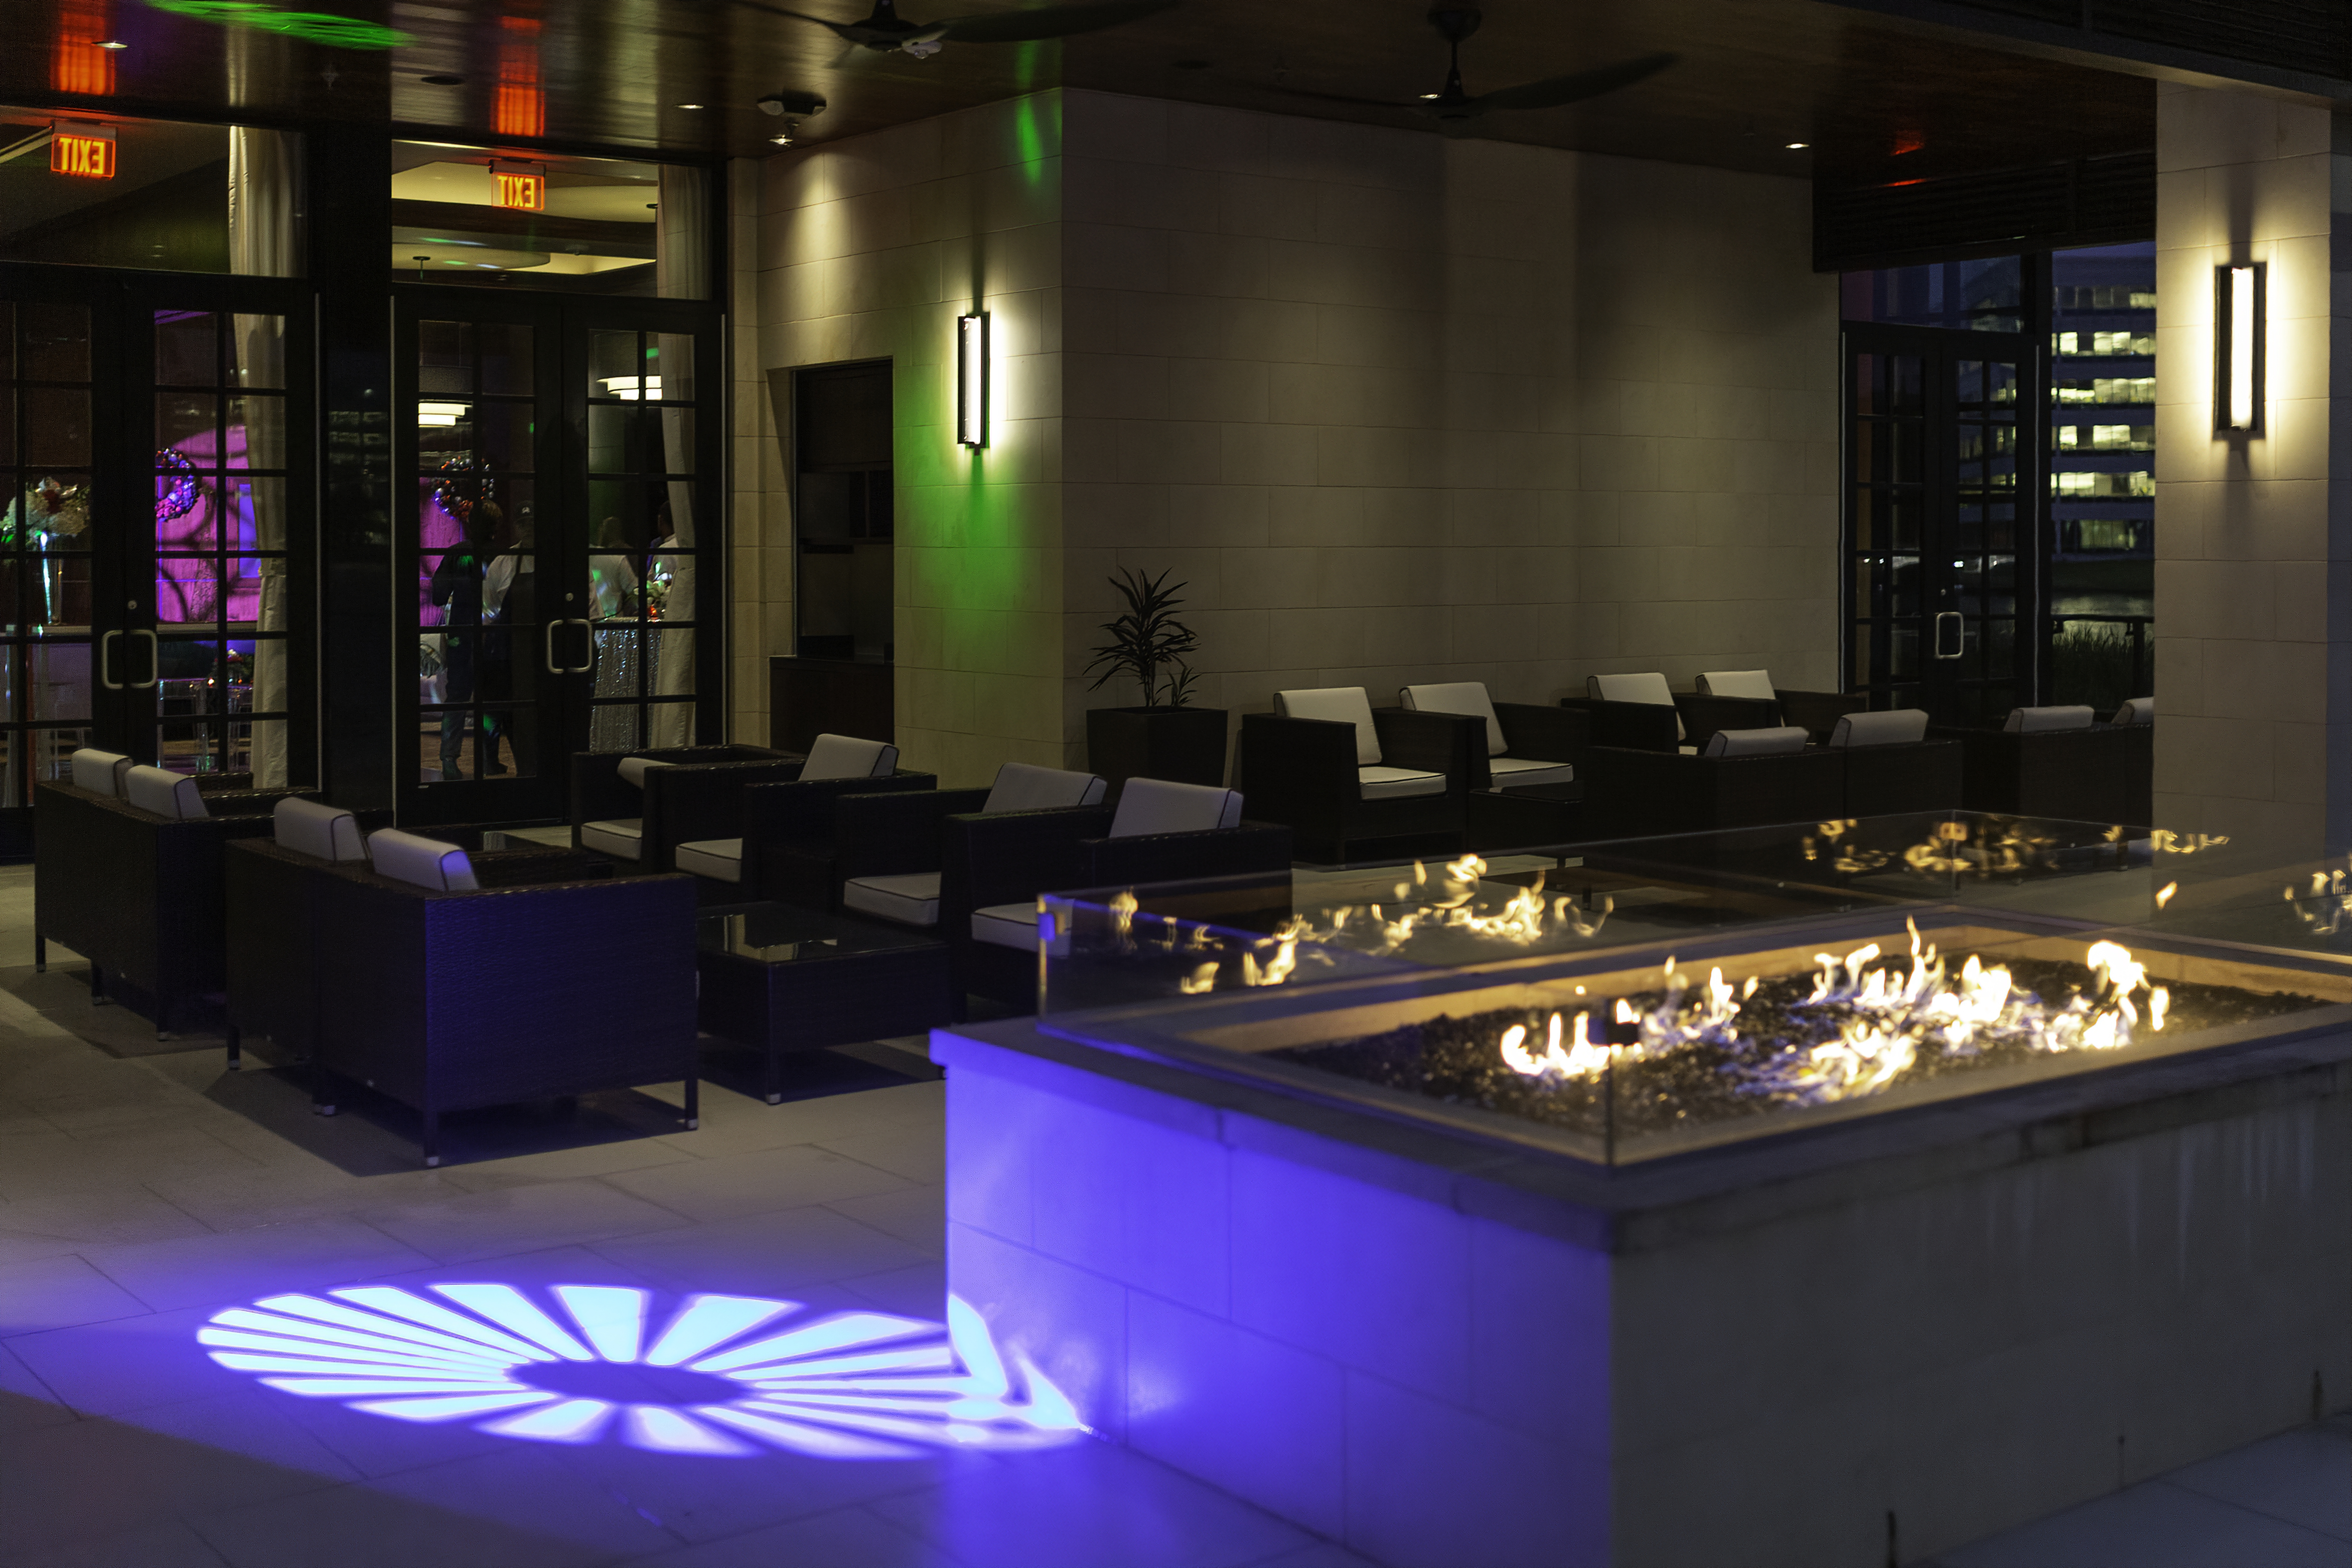 picture of Truluck's Woodlands private dining event on the outdoor terrace. Outdoor lounge style chairs and tables are surrounded by a luxurious gas fire pit and specialty lighting that was brought in to enhance the vibe.